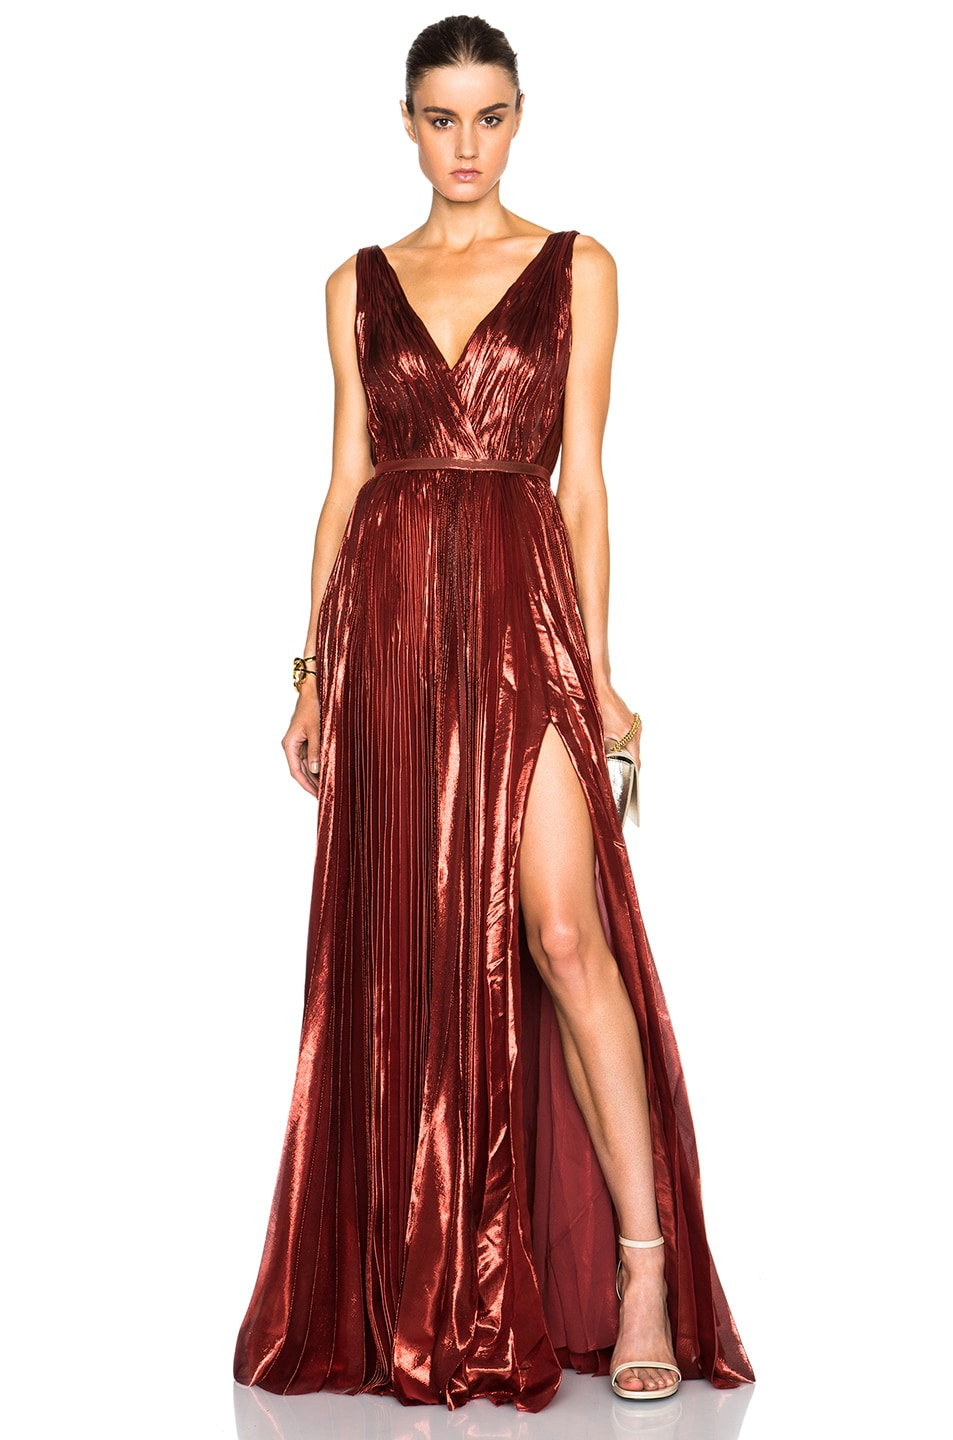 J. Mendel Lurex Chiffon Deep V Neck Gown in Burnt Orange | FWRD